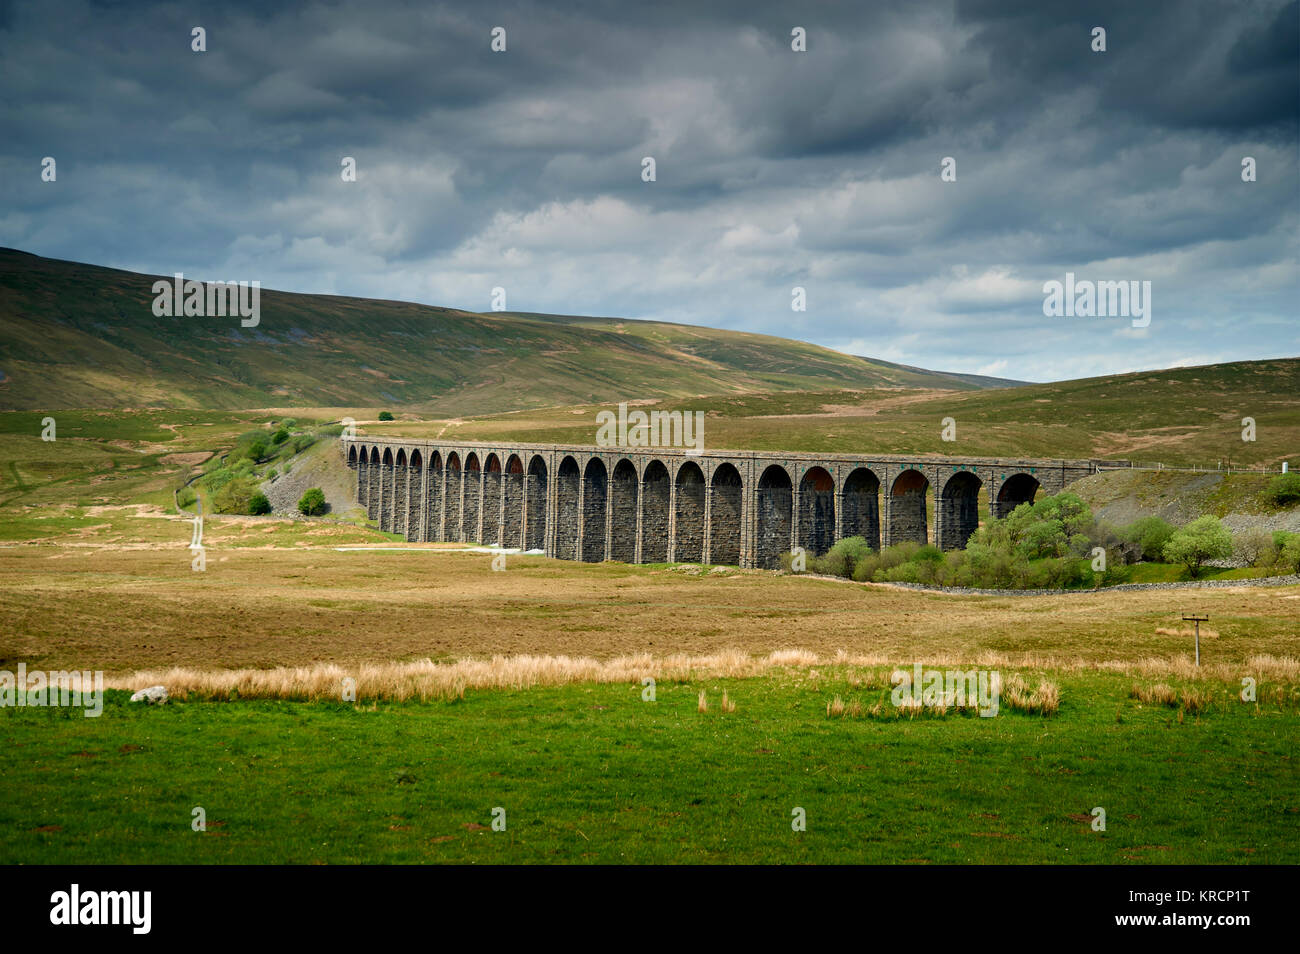 The Ribblehead Viaduct on the Settle-Carlisle railway line in the Yorkshire Dales National Park, England With Whernside - Stock Image